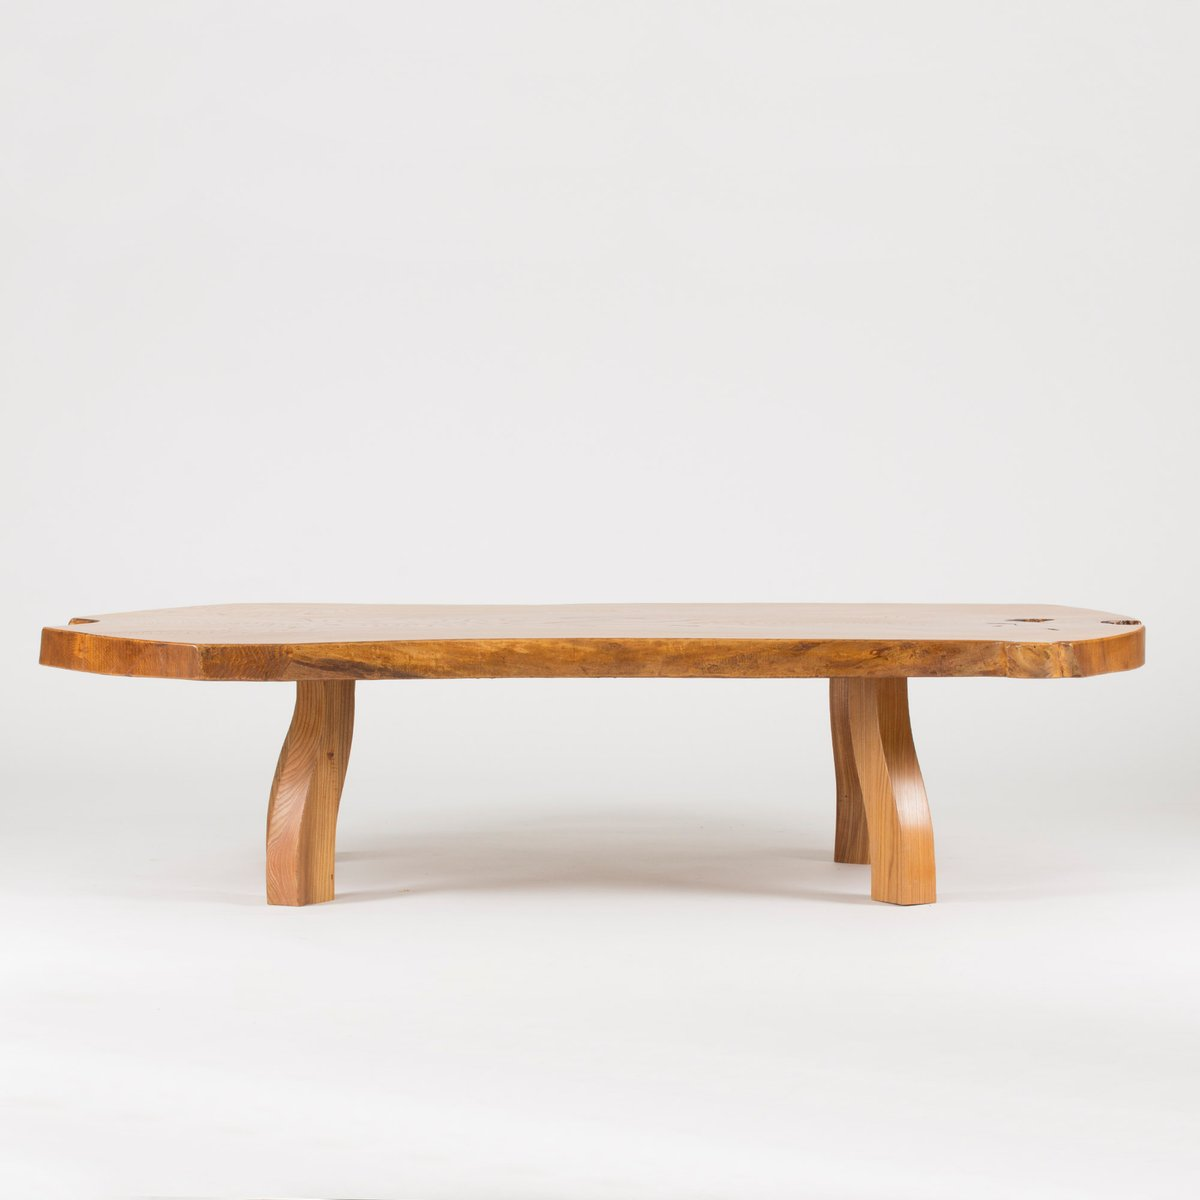 pine slab coffee tablec.a. beijbom, 1960s for sale at pamono